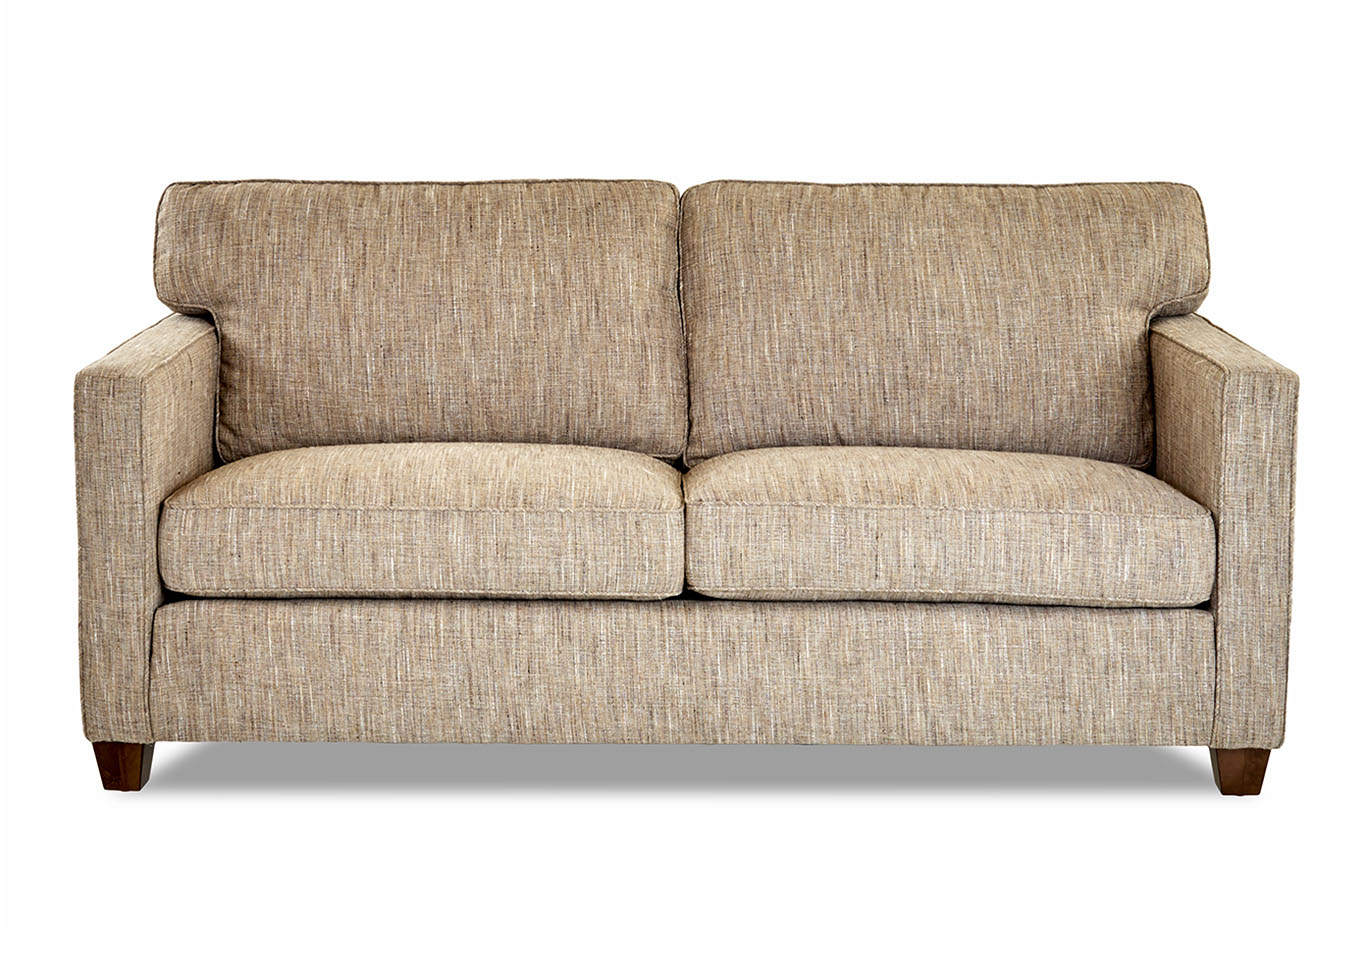 Write A Review - Jeffrey Sybil Doe Stationary Fabric Sofa - Best Buy Furniture And Mattress